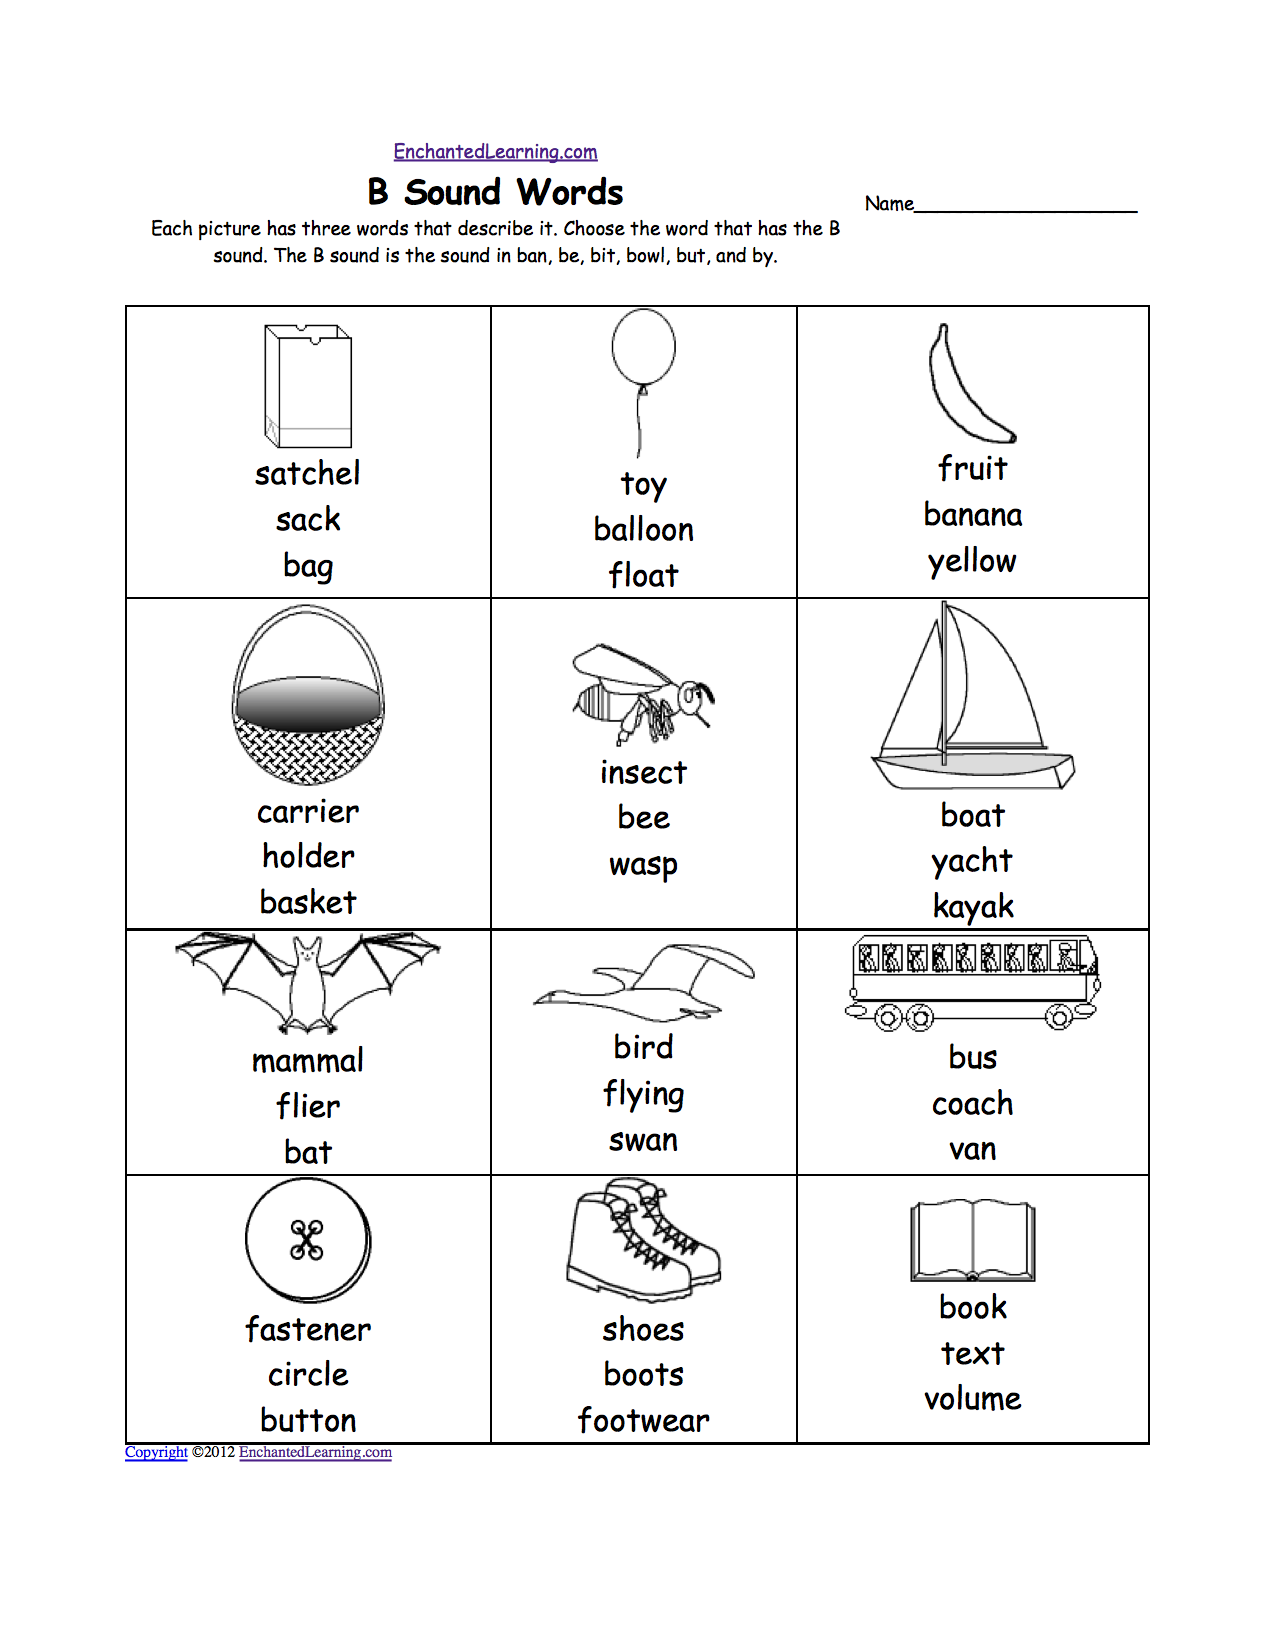 Proatmealus  Personable Phonics Worksheets Multiple Choice Worksheets To Print  With Lovely Quotbquot Sound Phonics Worksheet Multiple Choice Each Picture Has Three Words That Describe It Choose The Word That Has A Quotbquot Sound The Quotbquot Sound Is The Sound  With Awesome Free Pre Kindergarten Worksheets Also Subtract Fractions Worksheet In Addition Base Ten Addition Worksheets And Solving Equations Printable Worksheets As Well As Reading Worksheets Free Additionally Gas Laws Worksheet With Answers From Enchantedlearningcom With Proatmealus  Lovely Phonics Worksheets Multiple Choice Worksheets To Print  With Awesome Quotbquot Sound Phonics Worksheet Multiple Choice Each Picture Has Three Words That Describe It Choose The Word That Has A Quotbquot Sound The Quotbquot Sound Is The Sound  And Personable Free Pre Kindergarten Worksheets Also Subtract Fractions Worksheet In Addition Base Ten Addition Worksheets From Enchantedlearningcom